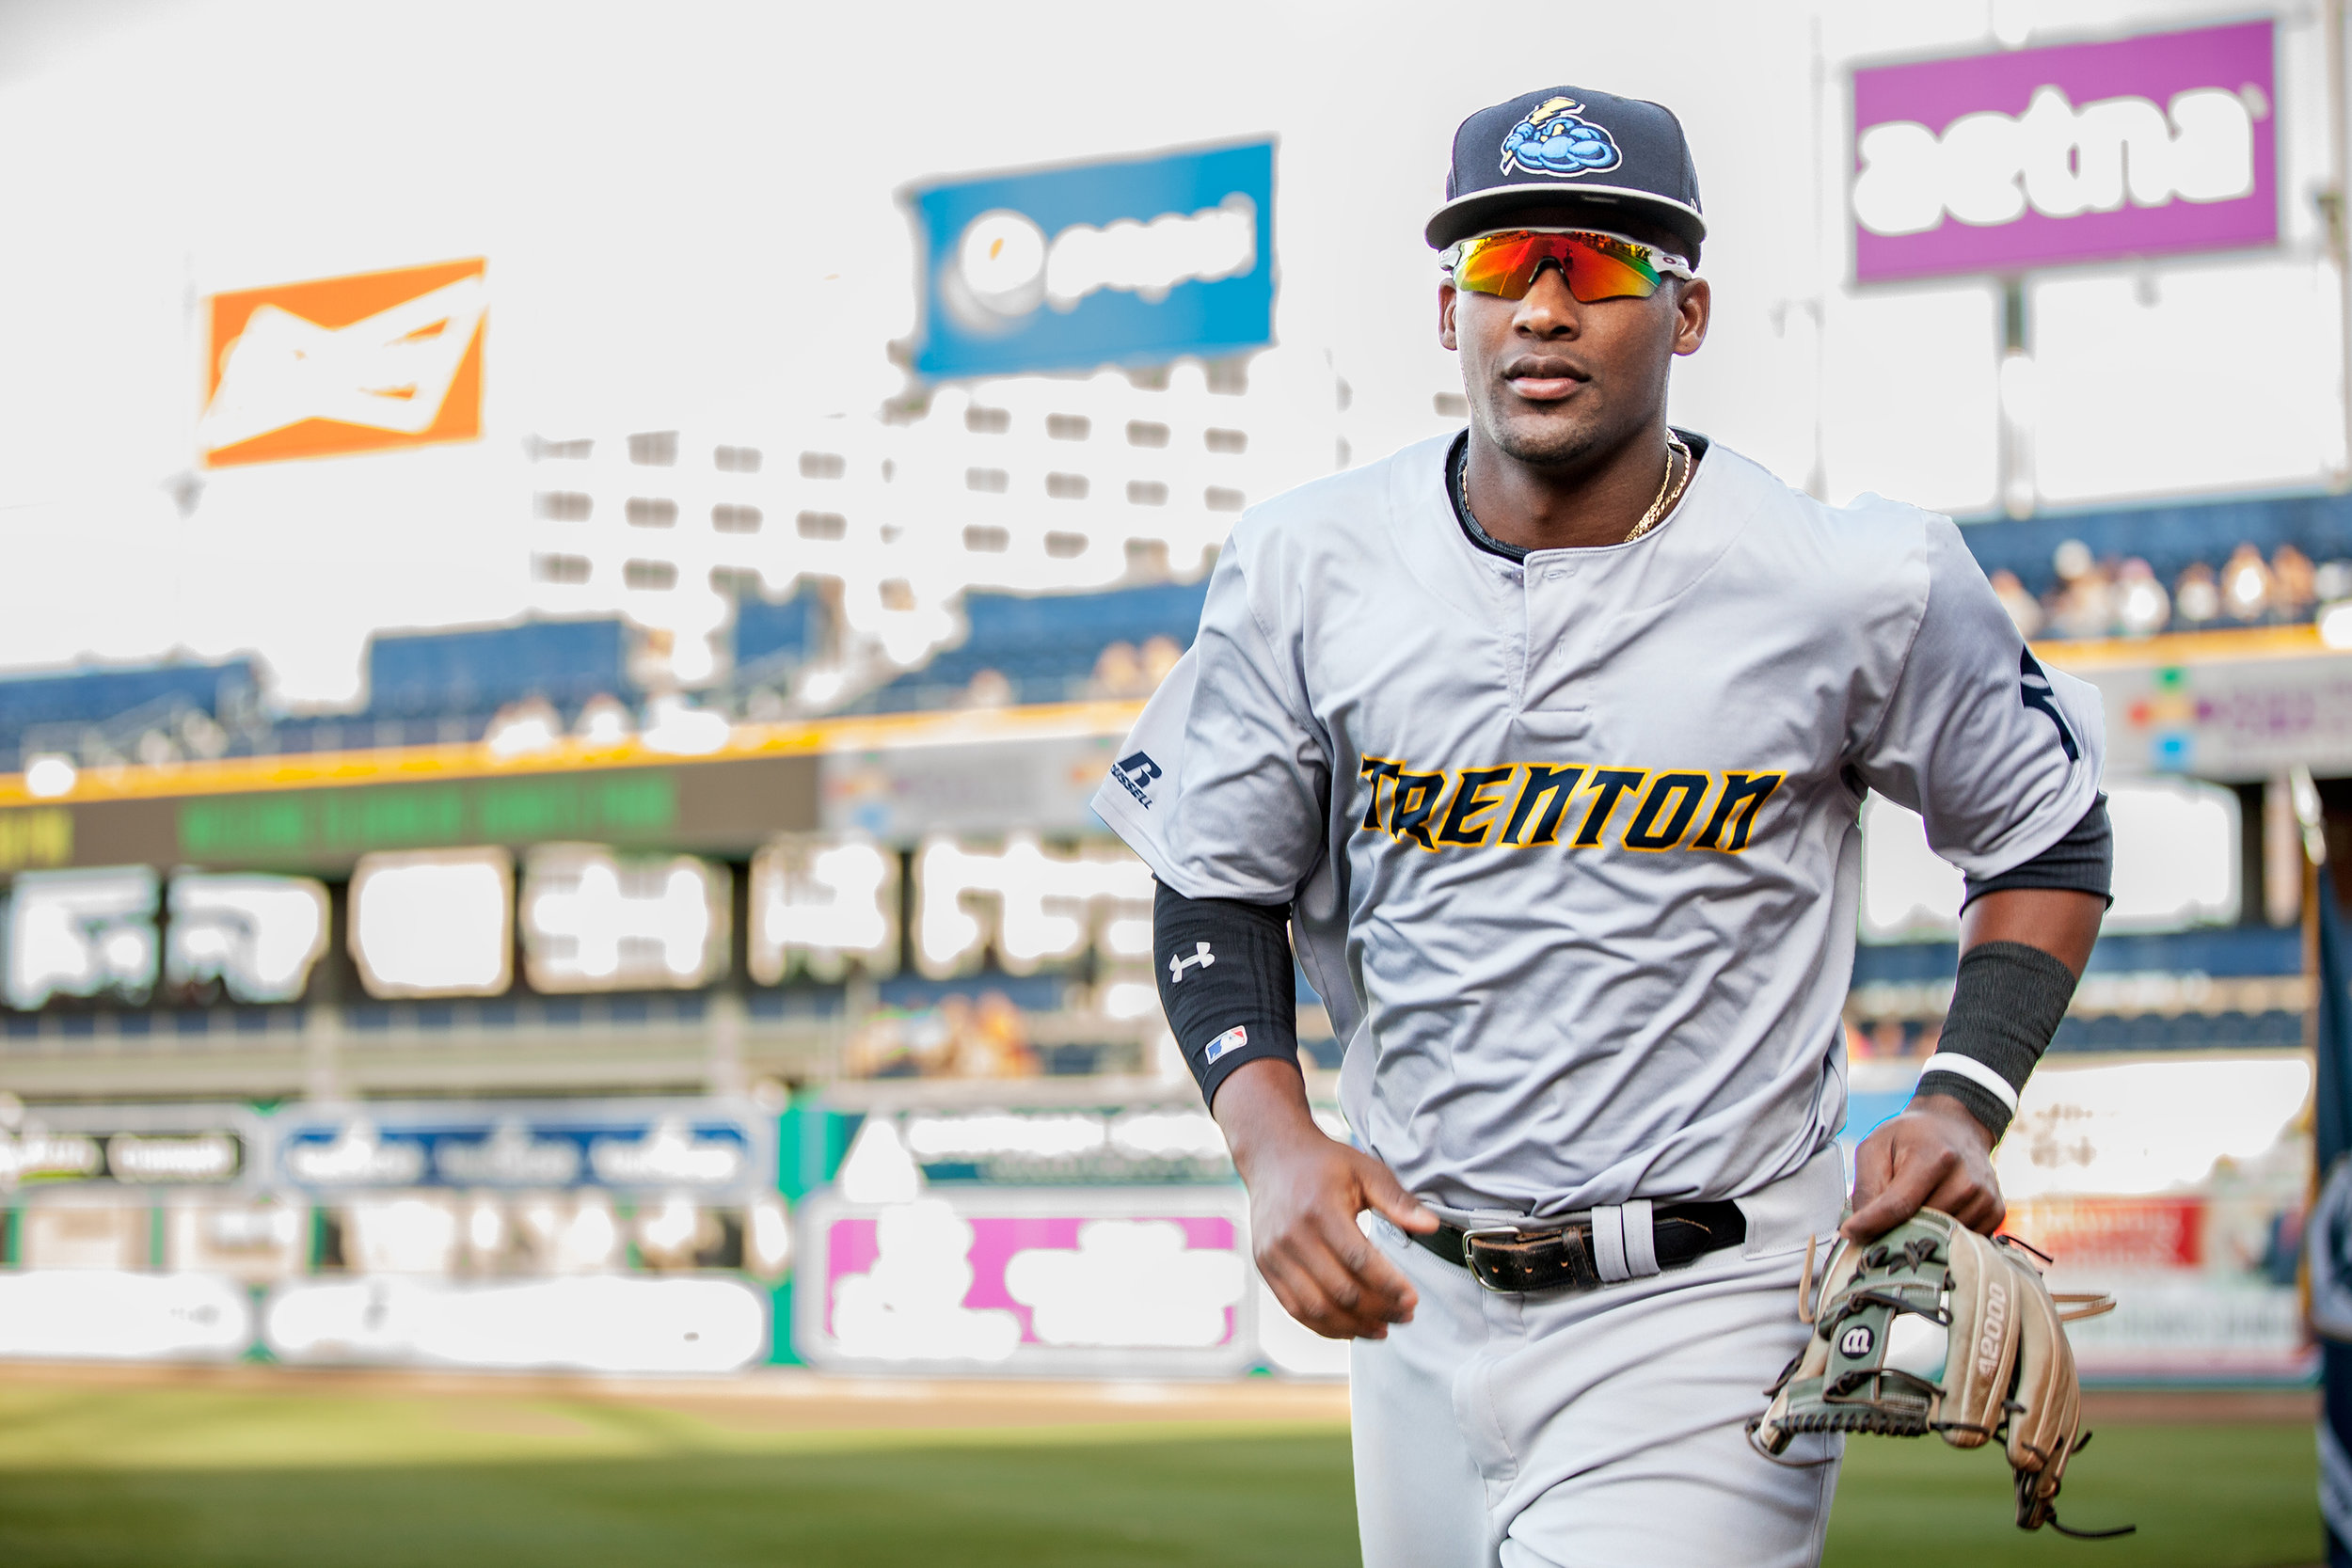 MIGEL ANDUJAR MINOR LEAUGE BASEBALL MLB YANKEES TRENTON THUNDER-CREATIVE SPORTS PORTRAITS © JONATHAN R. BECKERMAN PHOTOGRAPHY 061417 3.jpg